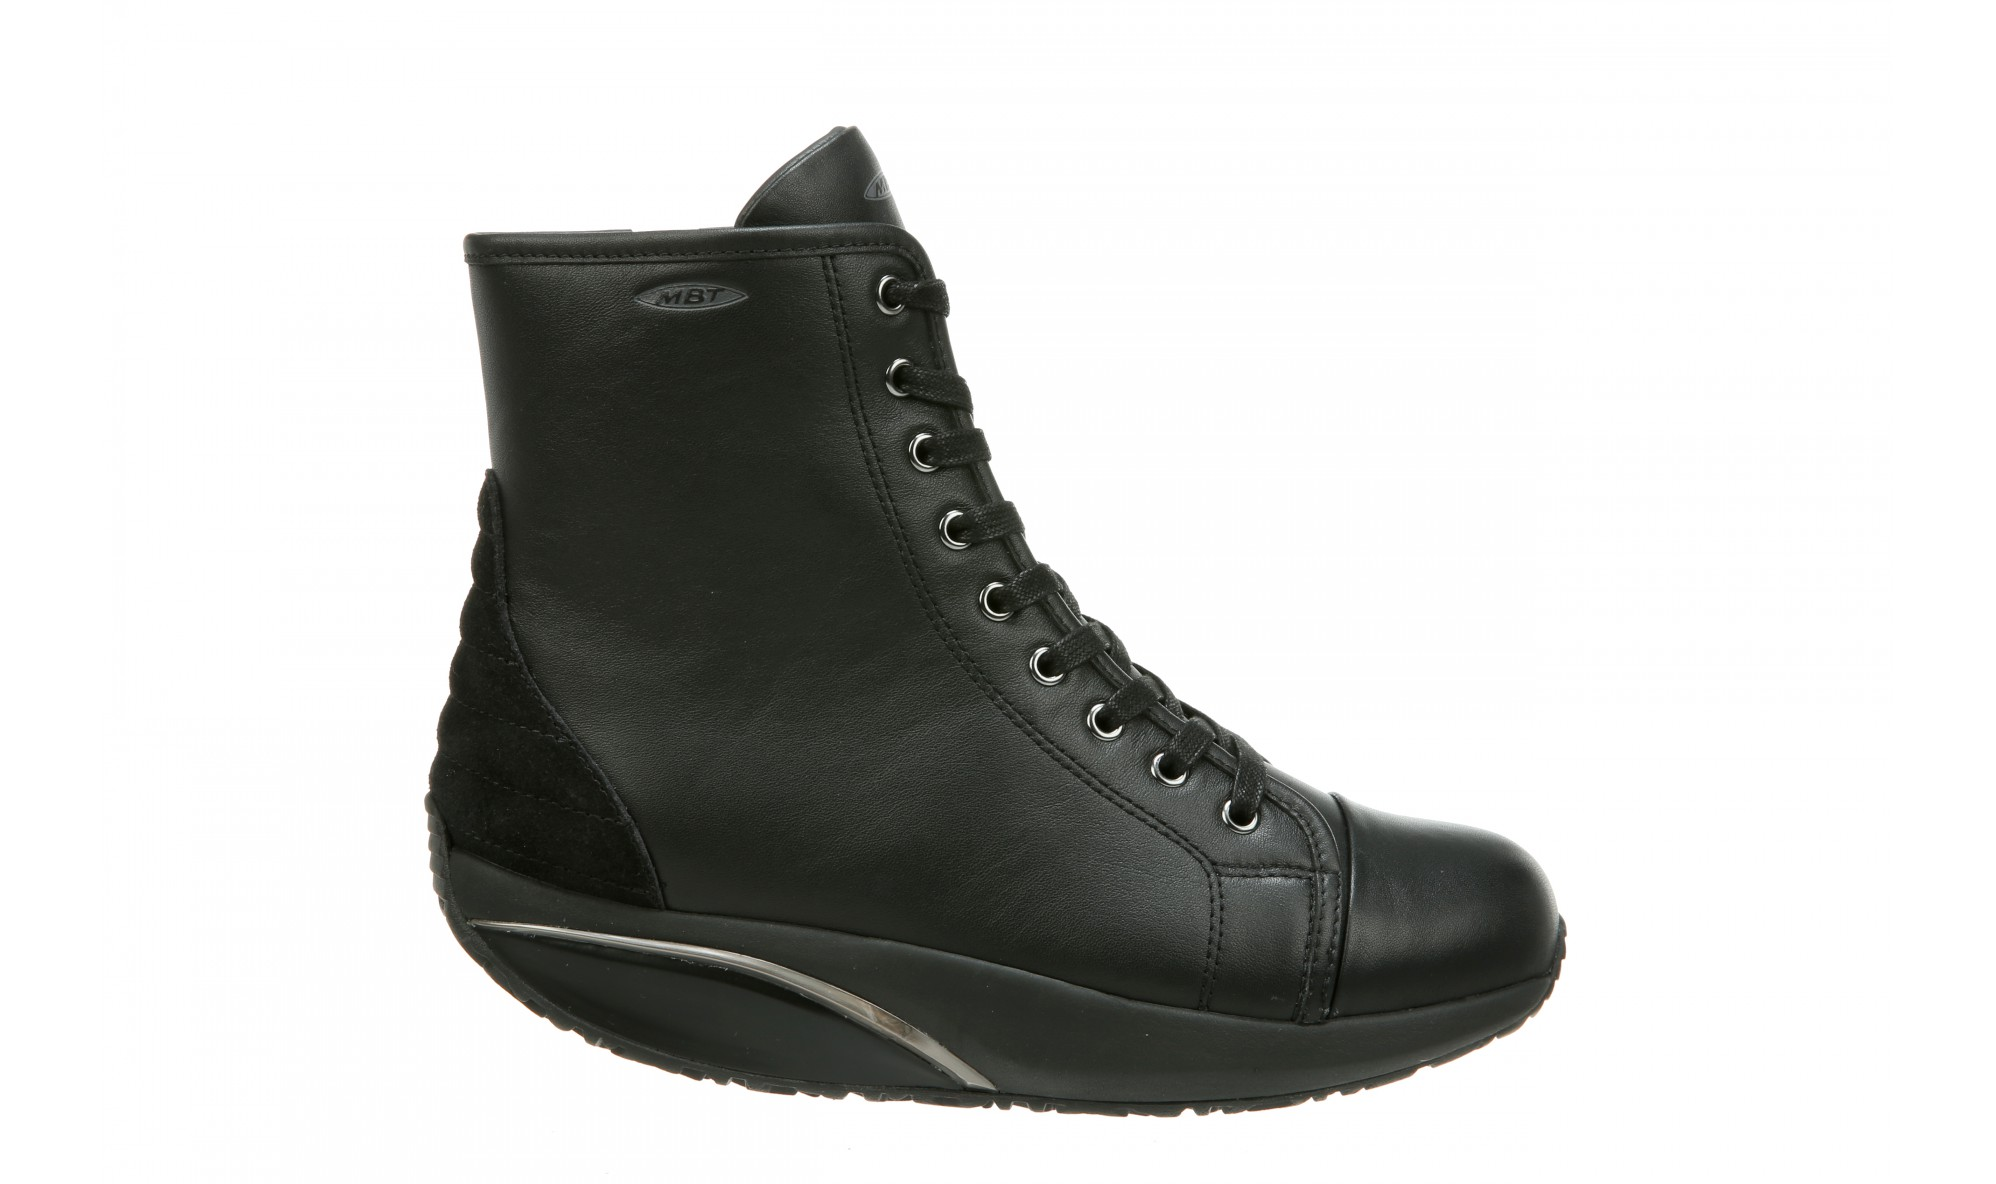 MBT Monya Boot - Women's - Black